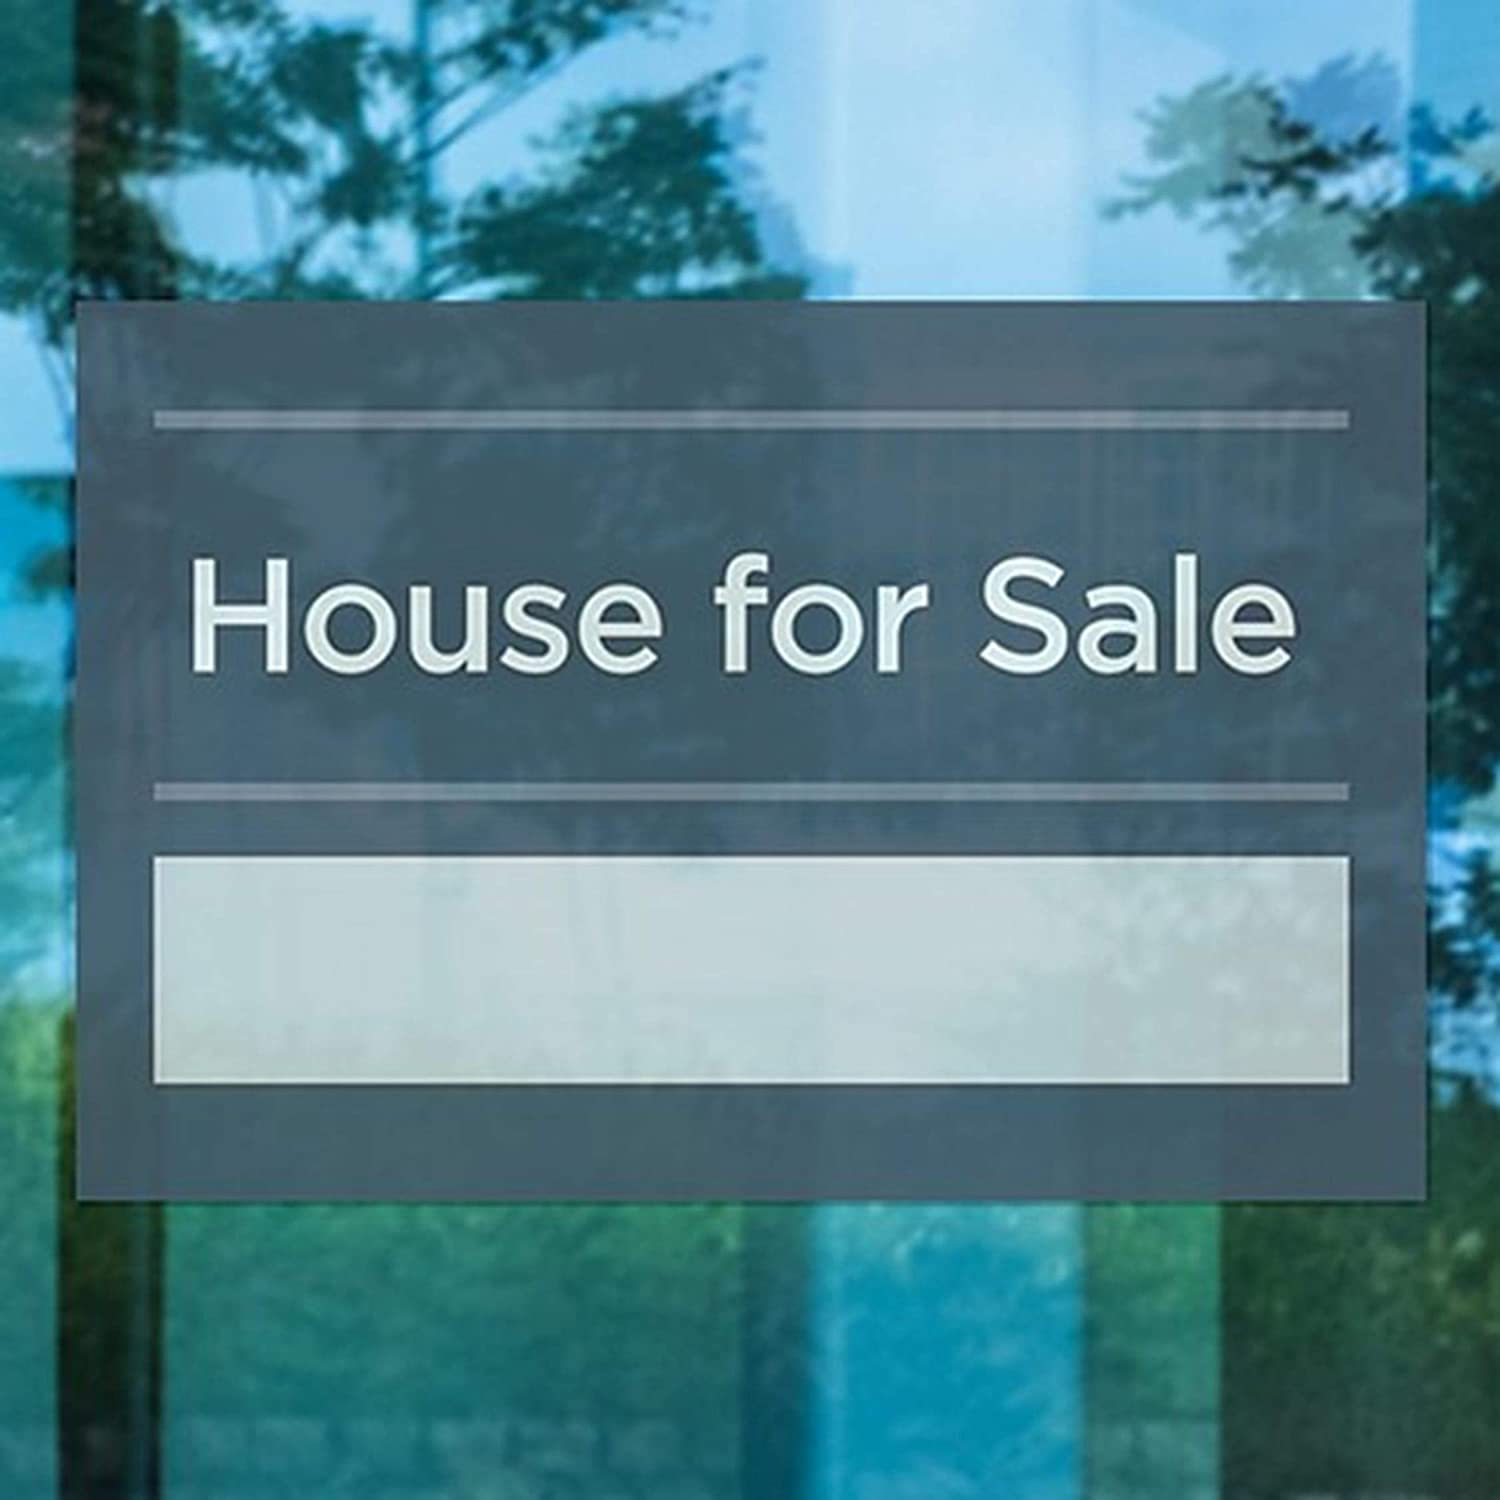 CGSignLab House for Sale 30x20 Basic Navy Clear Window Cling 5-Pack